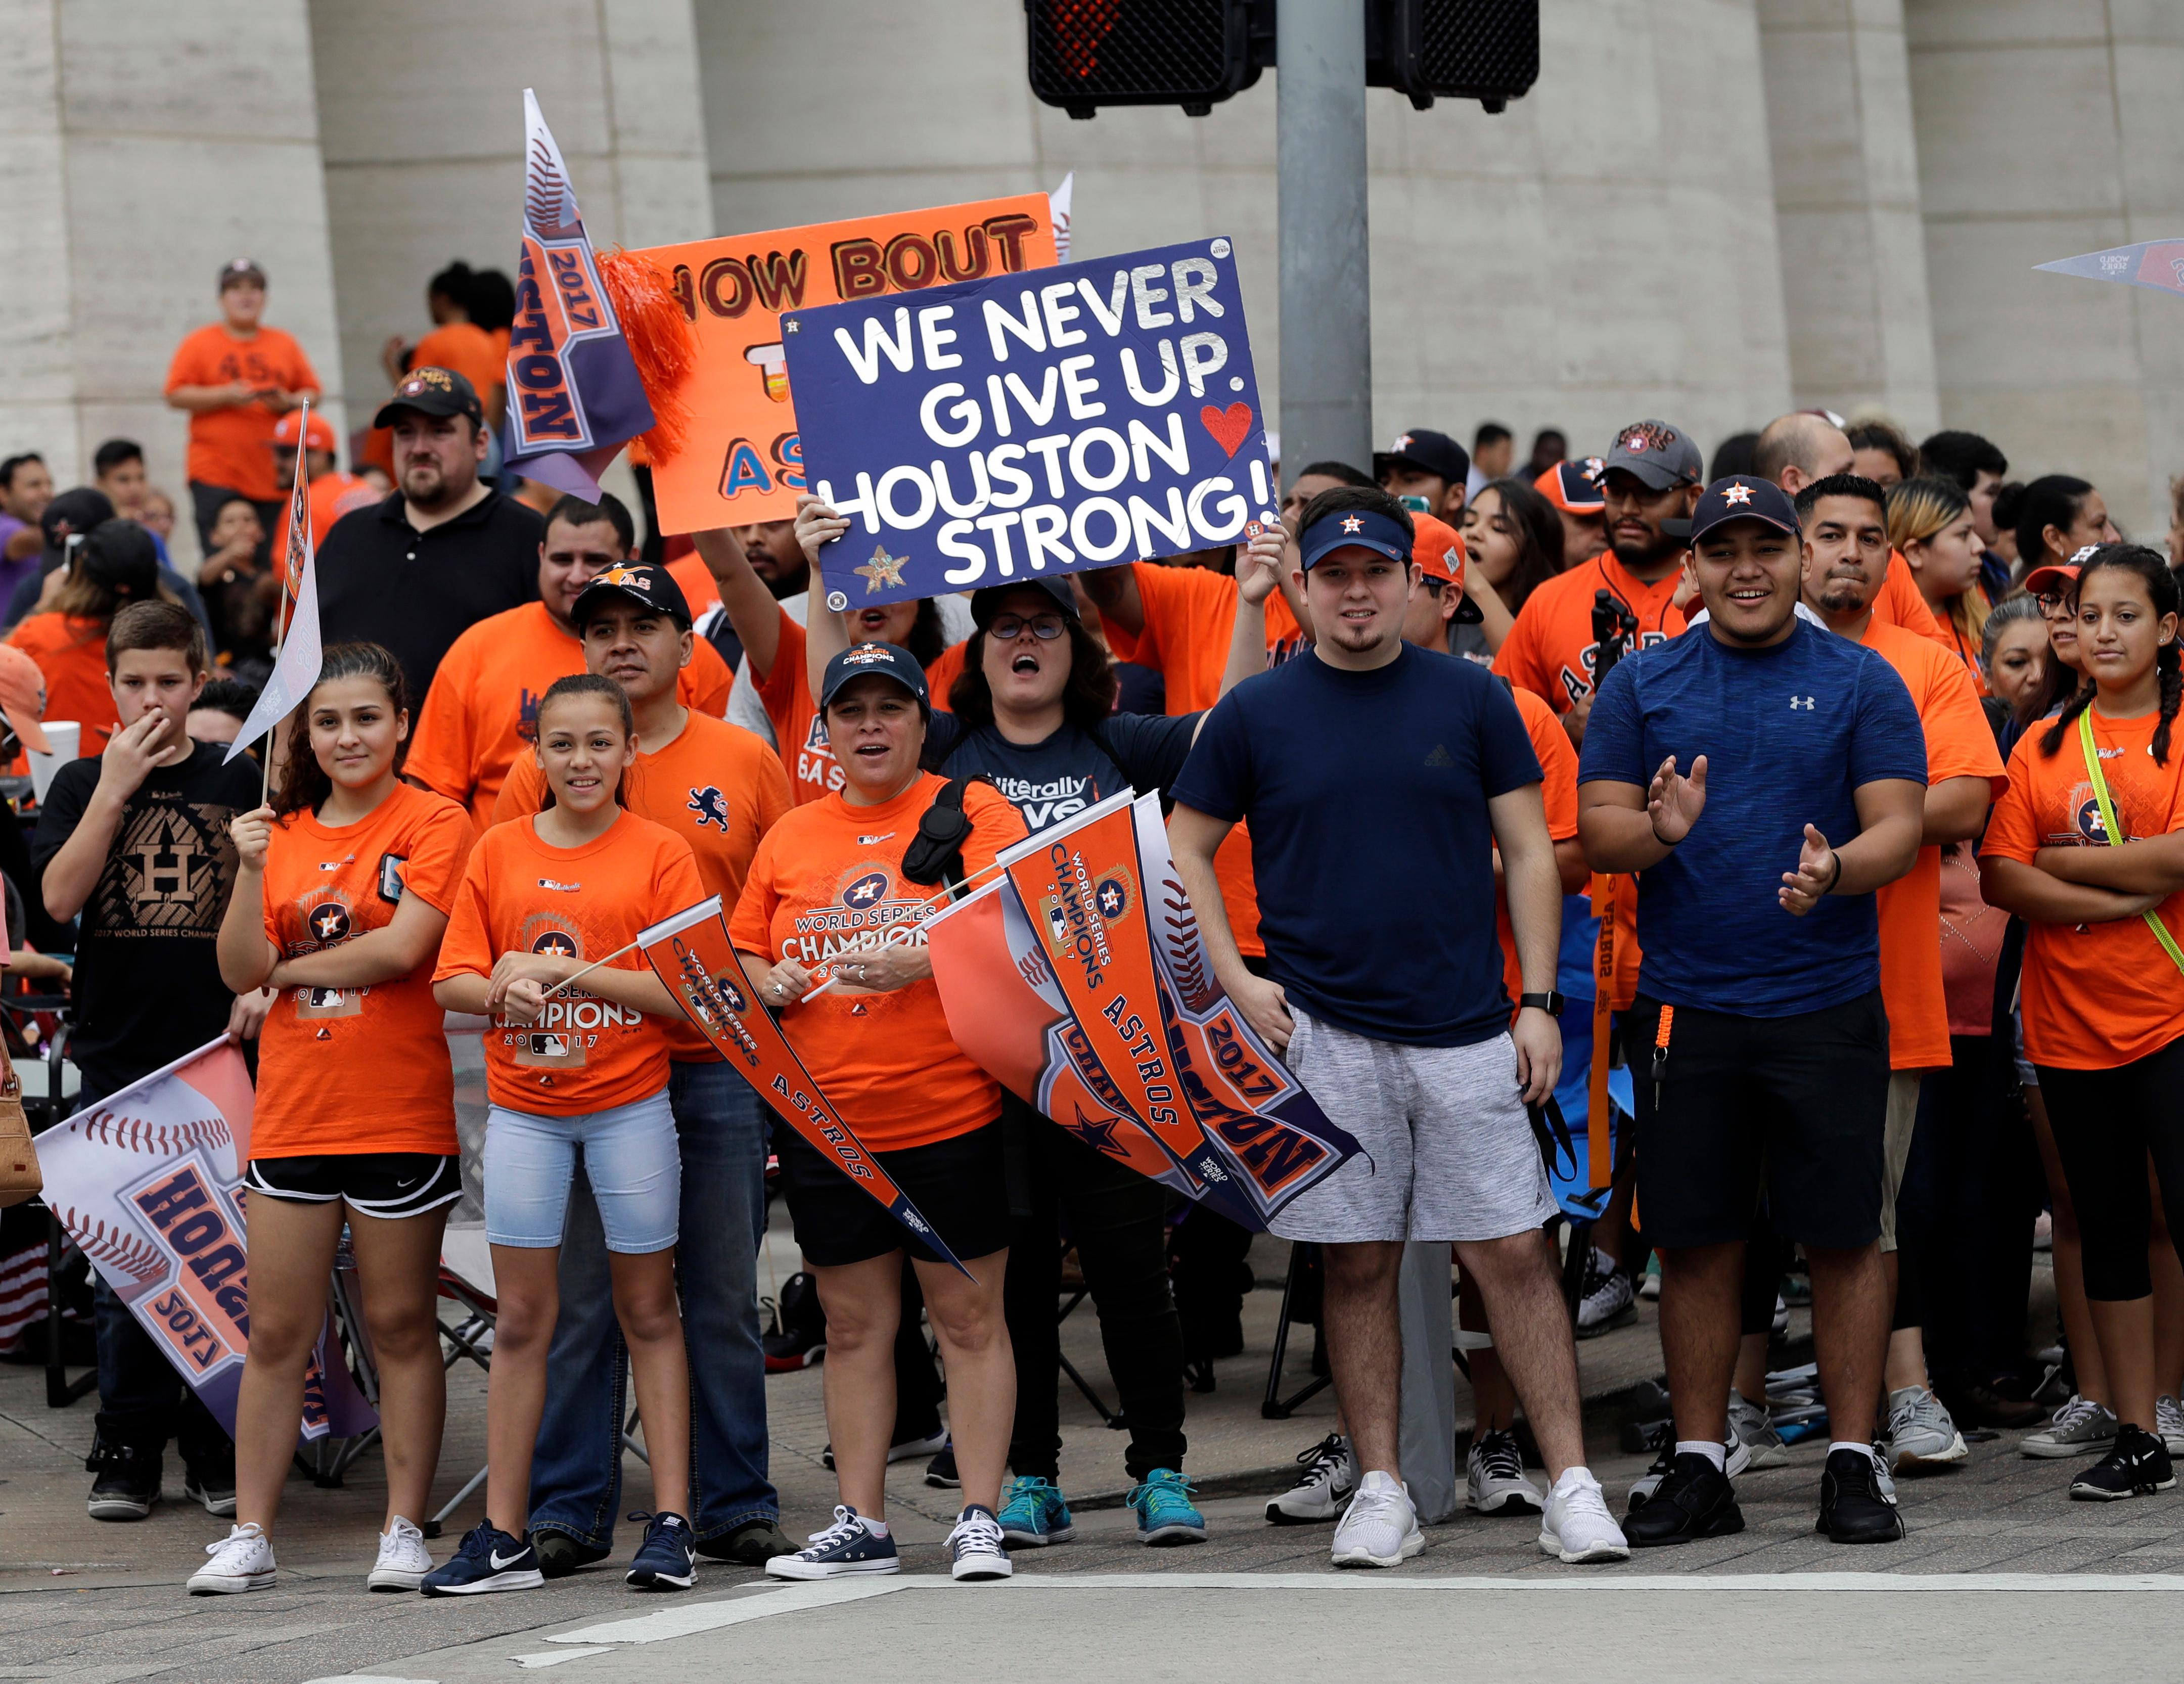 Houston Astros fans celebrate before a parade honoring the World Series baseball champions Friday, Nov. 3, 2017, in Houston. (AP Photo/David J. Phillip)